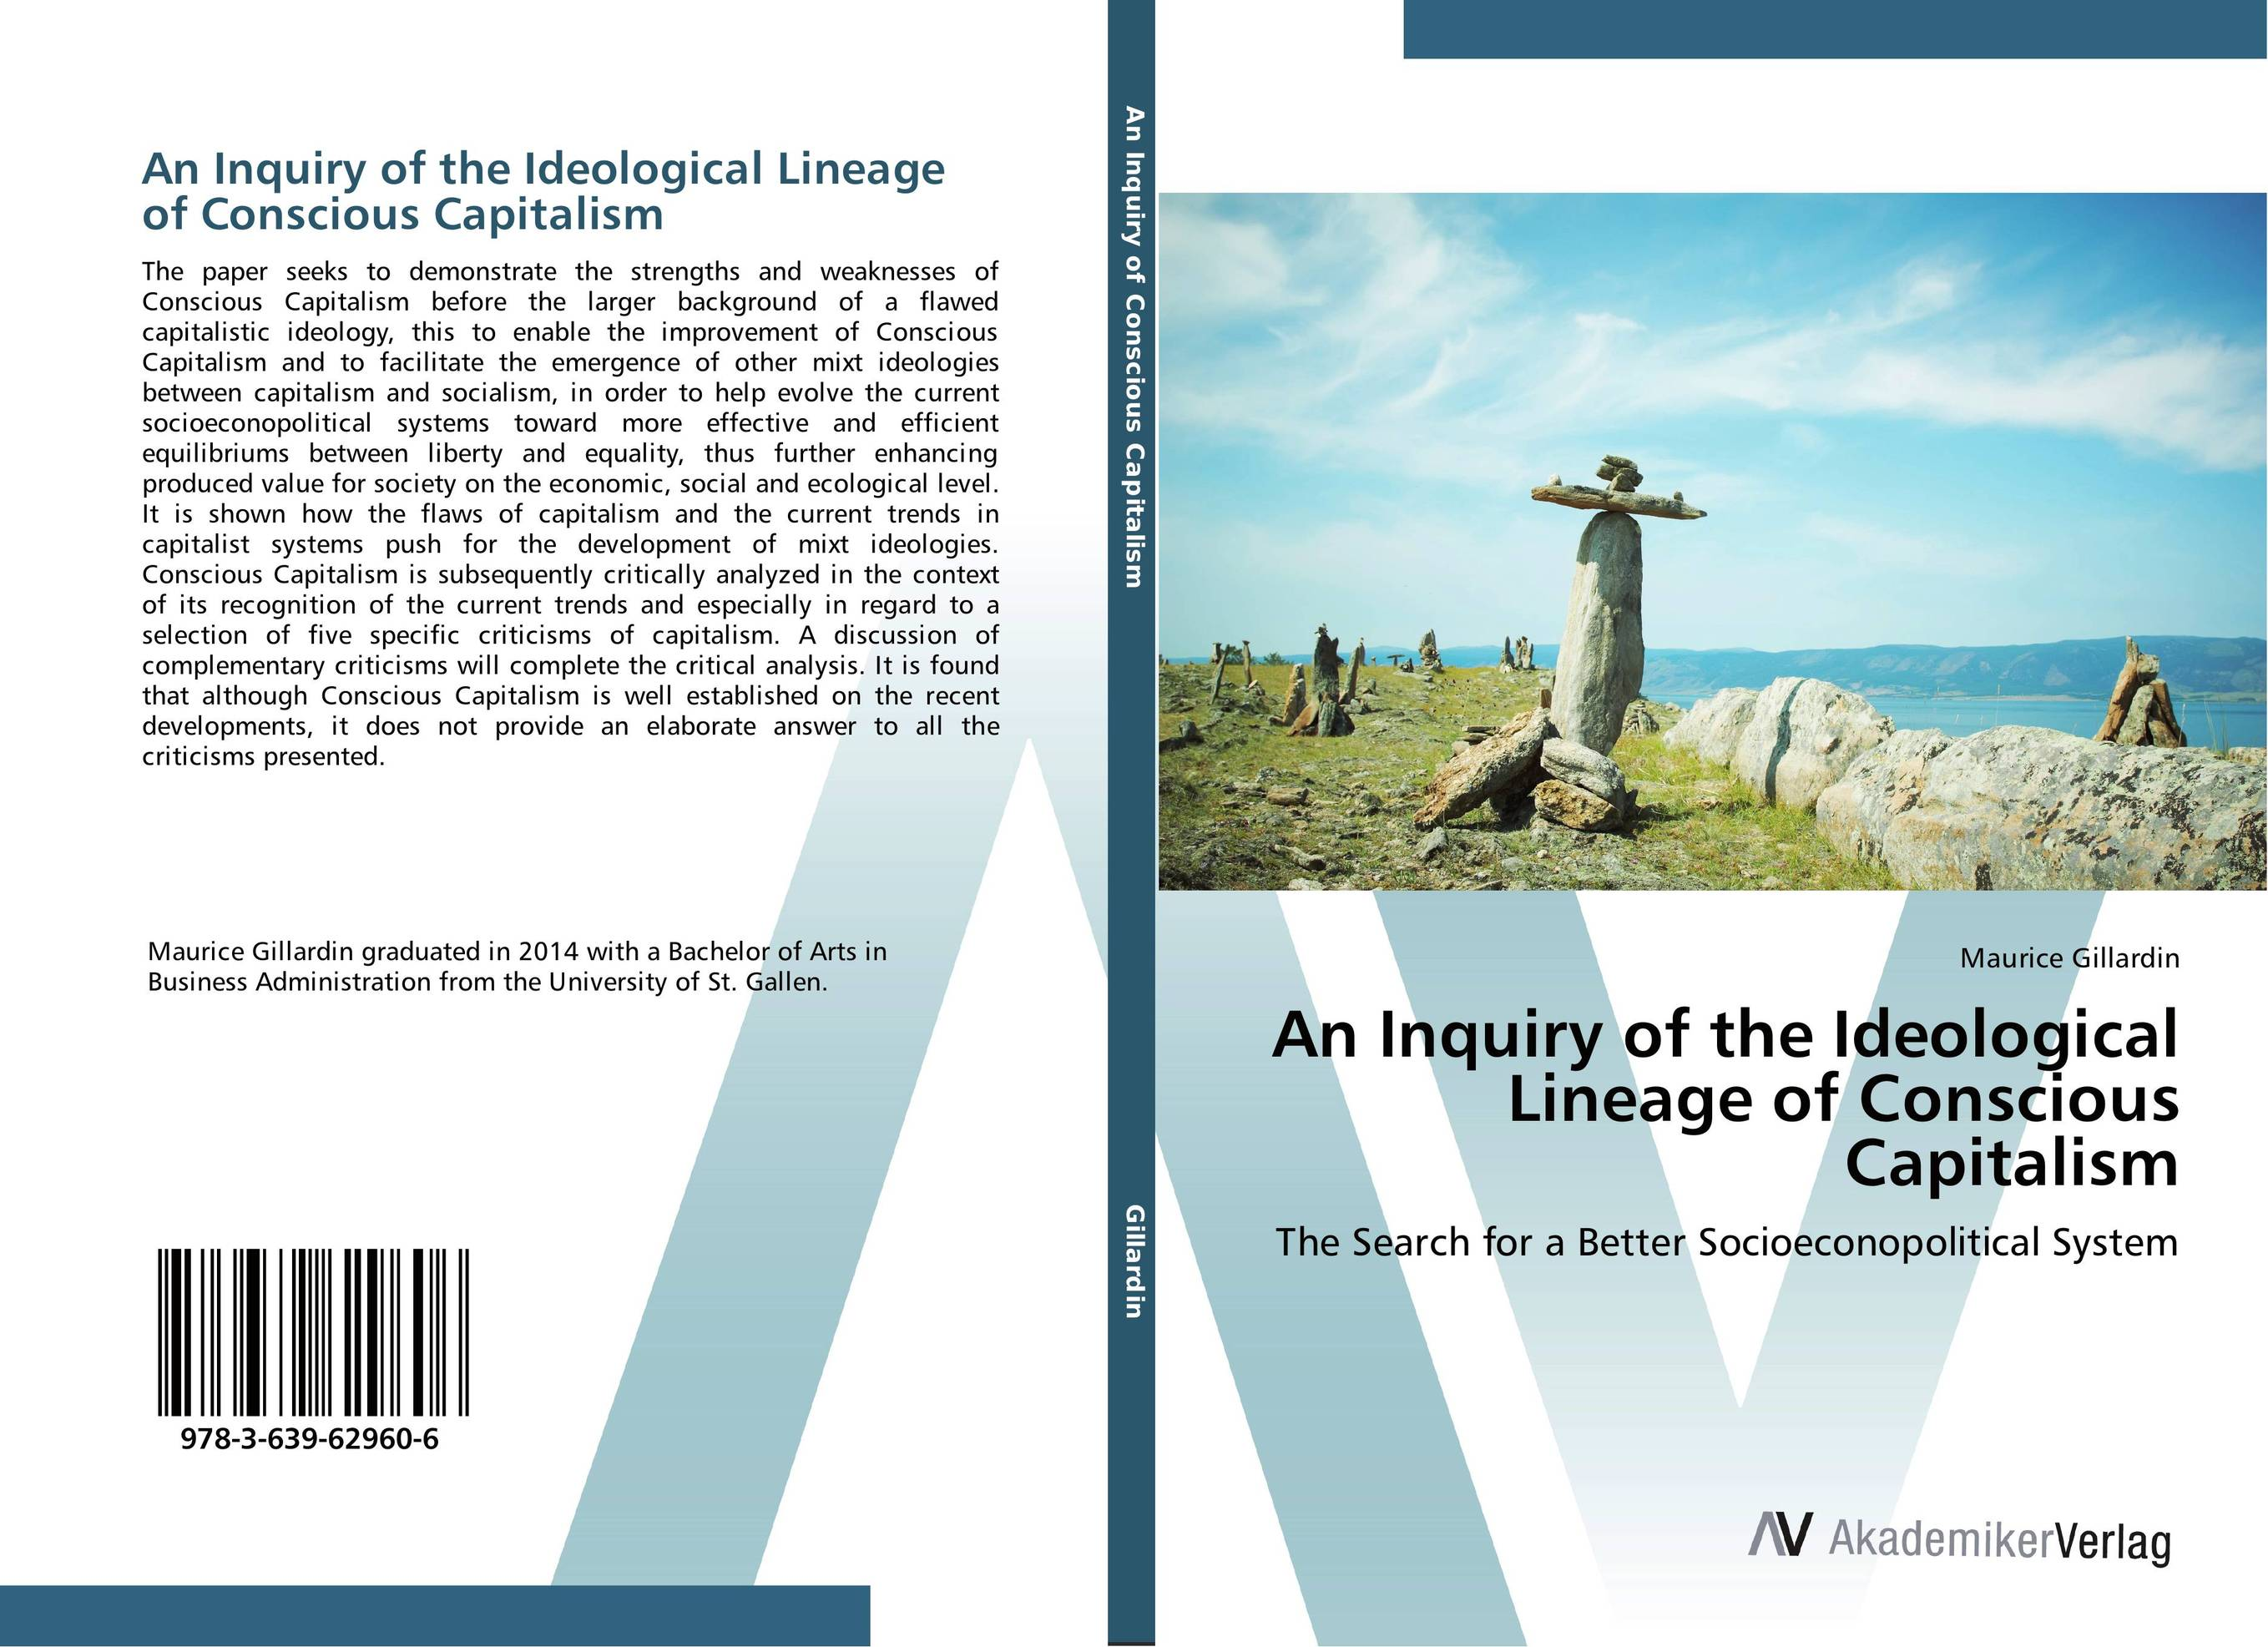 An Inquiry of the Ideological Lineage of Conscious Capitalism